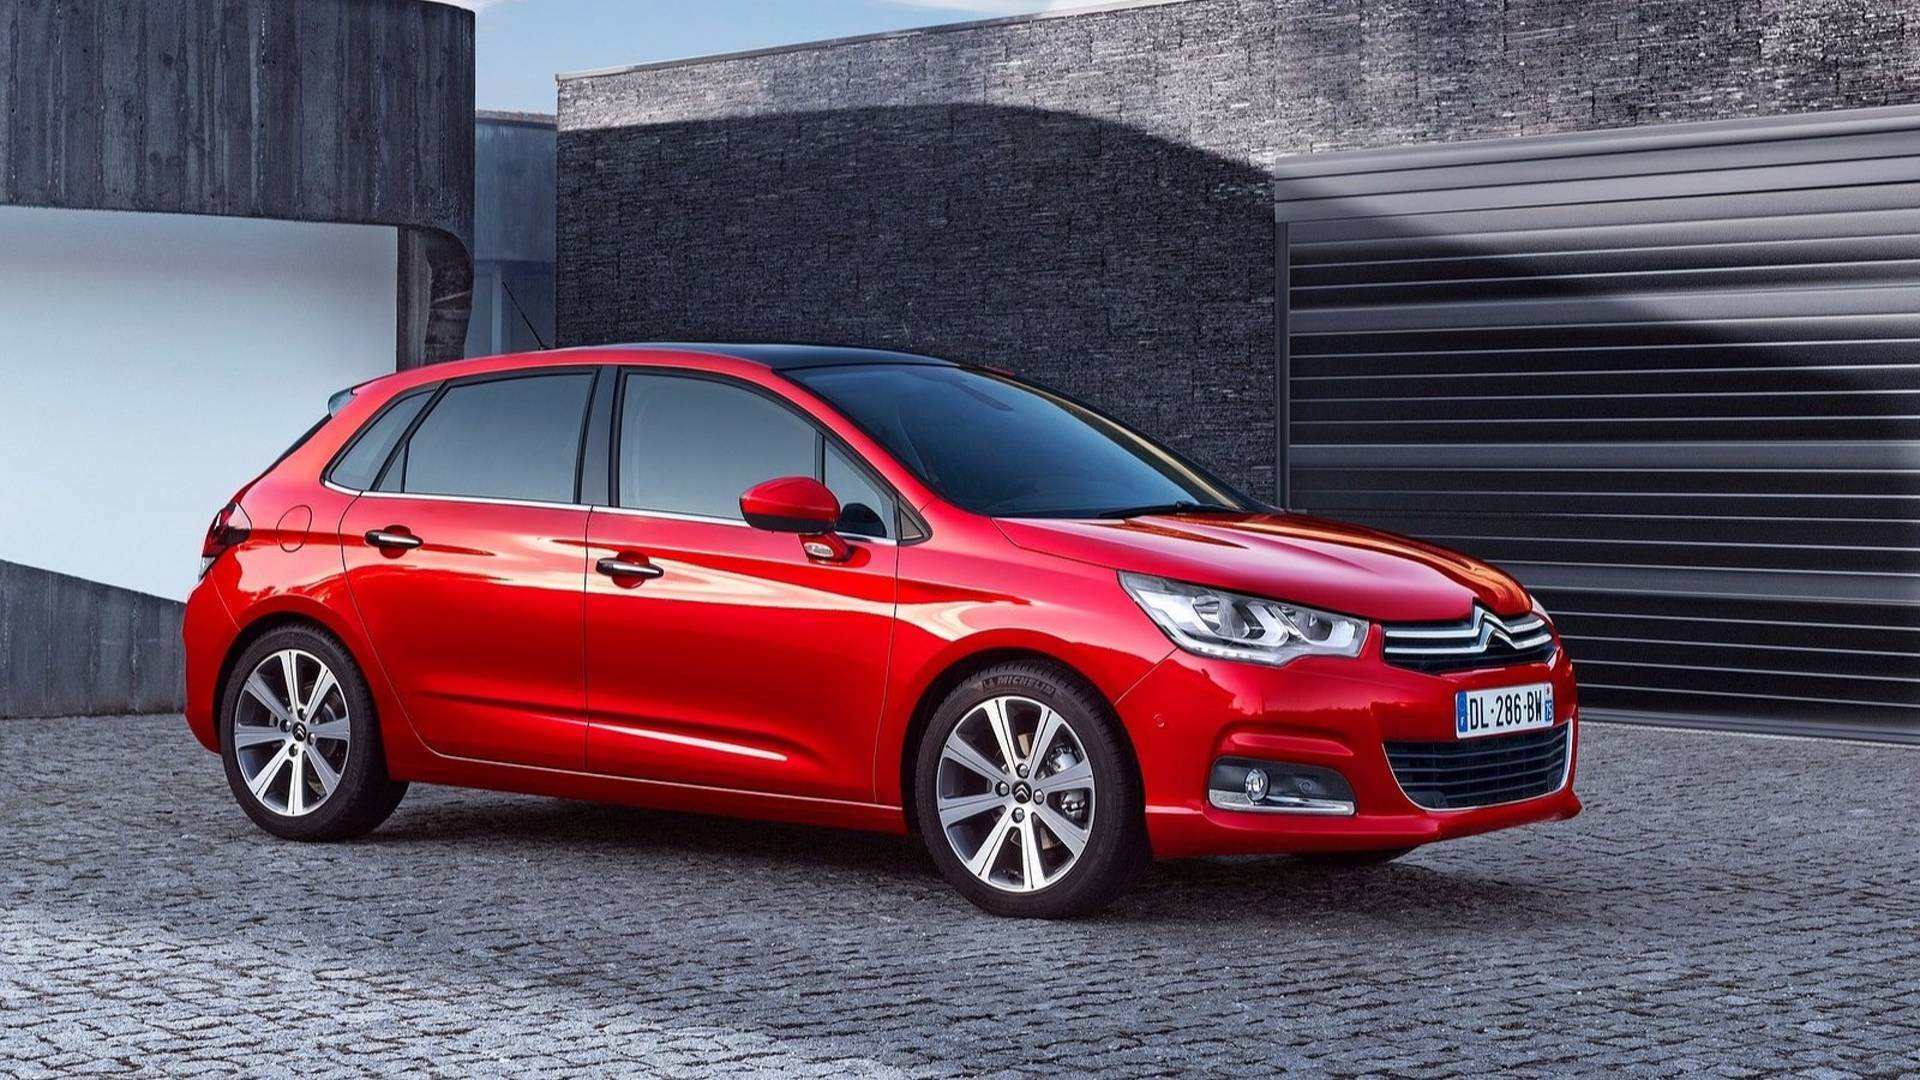 99 The Best 2019 New Citroen C4 Redesign And Concept